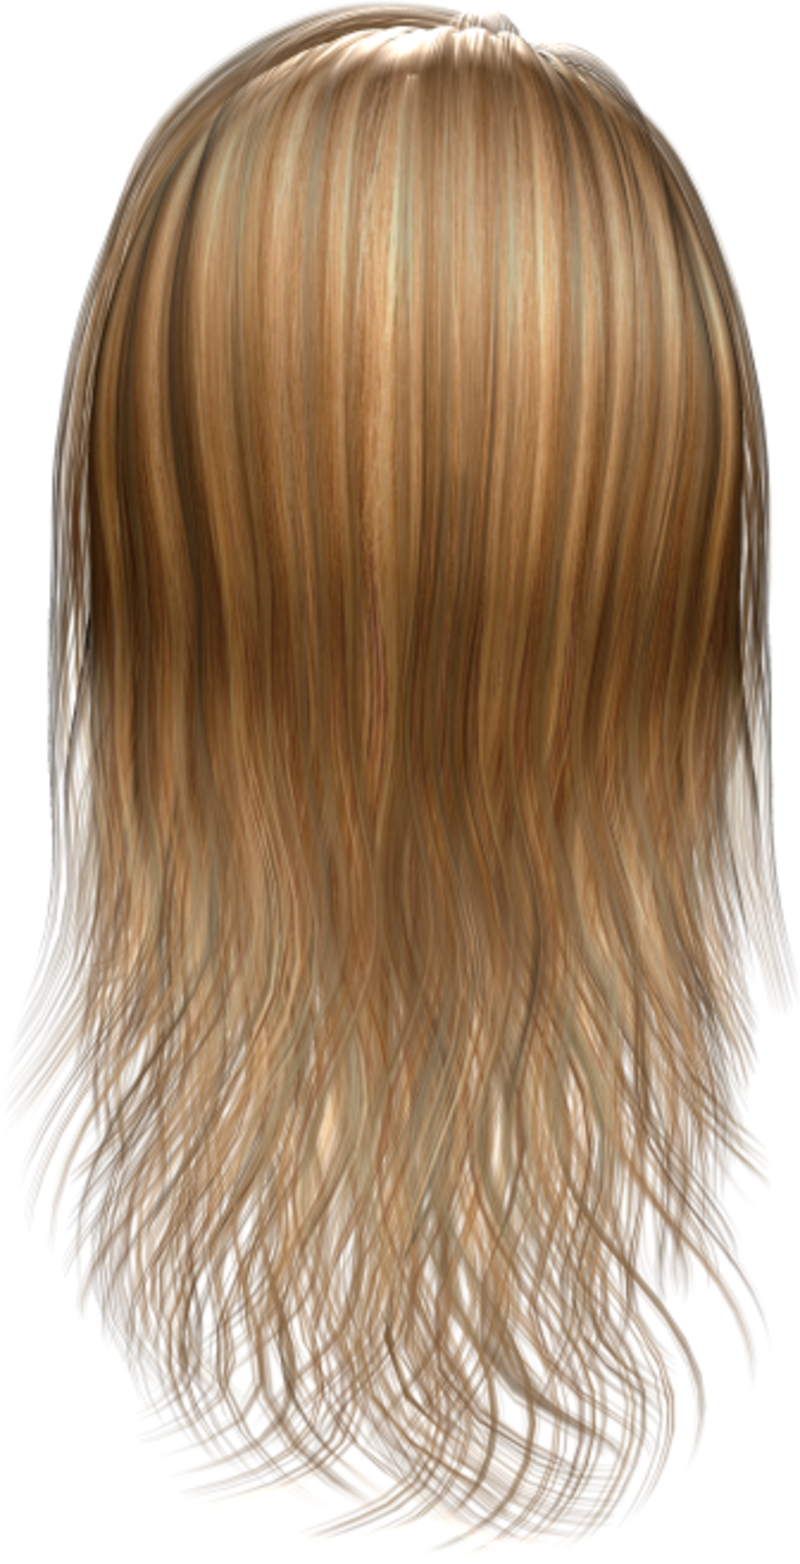 Hair_Blond-b-01.png